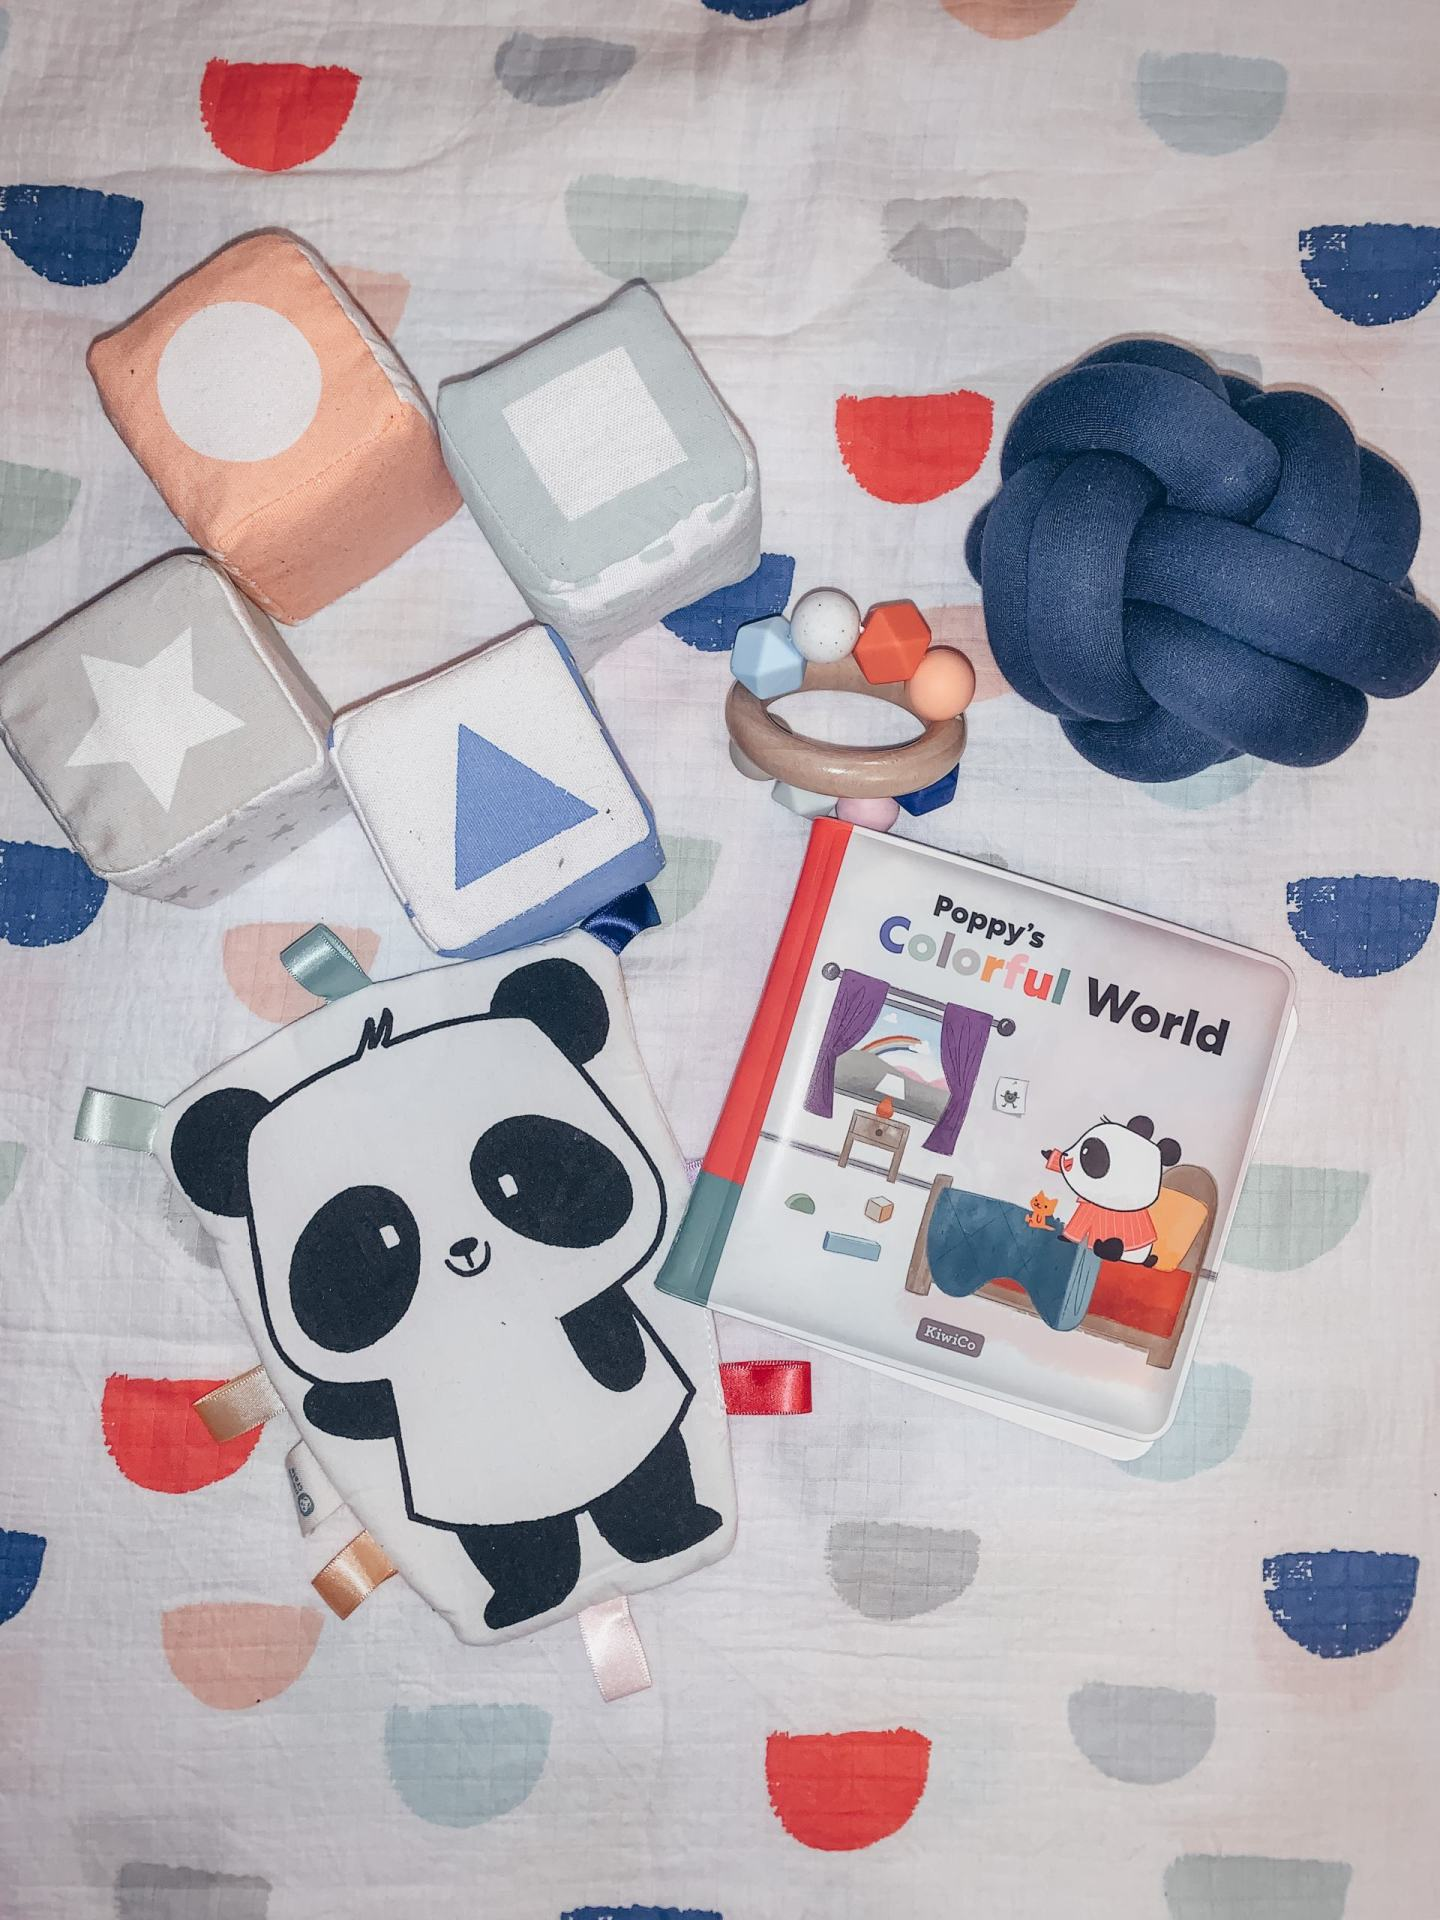 kiwico-pandacrate-subscription-box-sensory-play-stay-at-home-stylinglifetoday